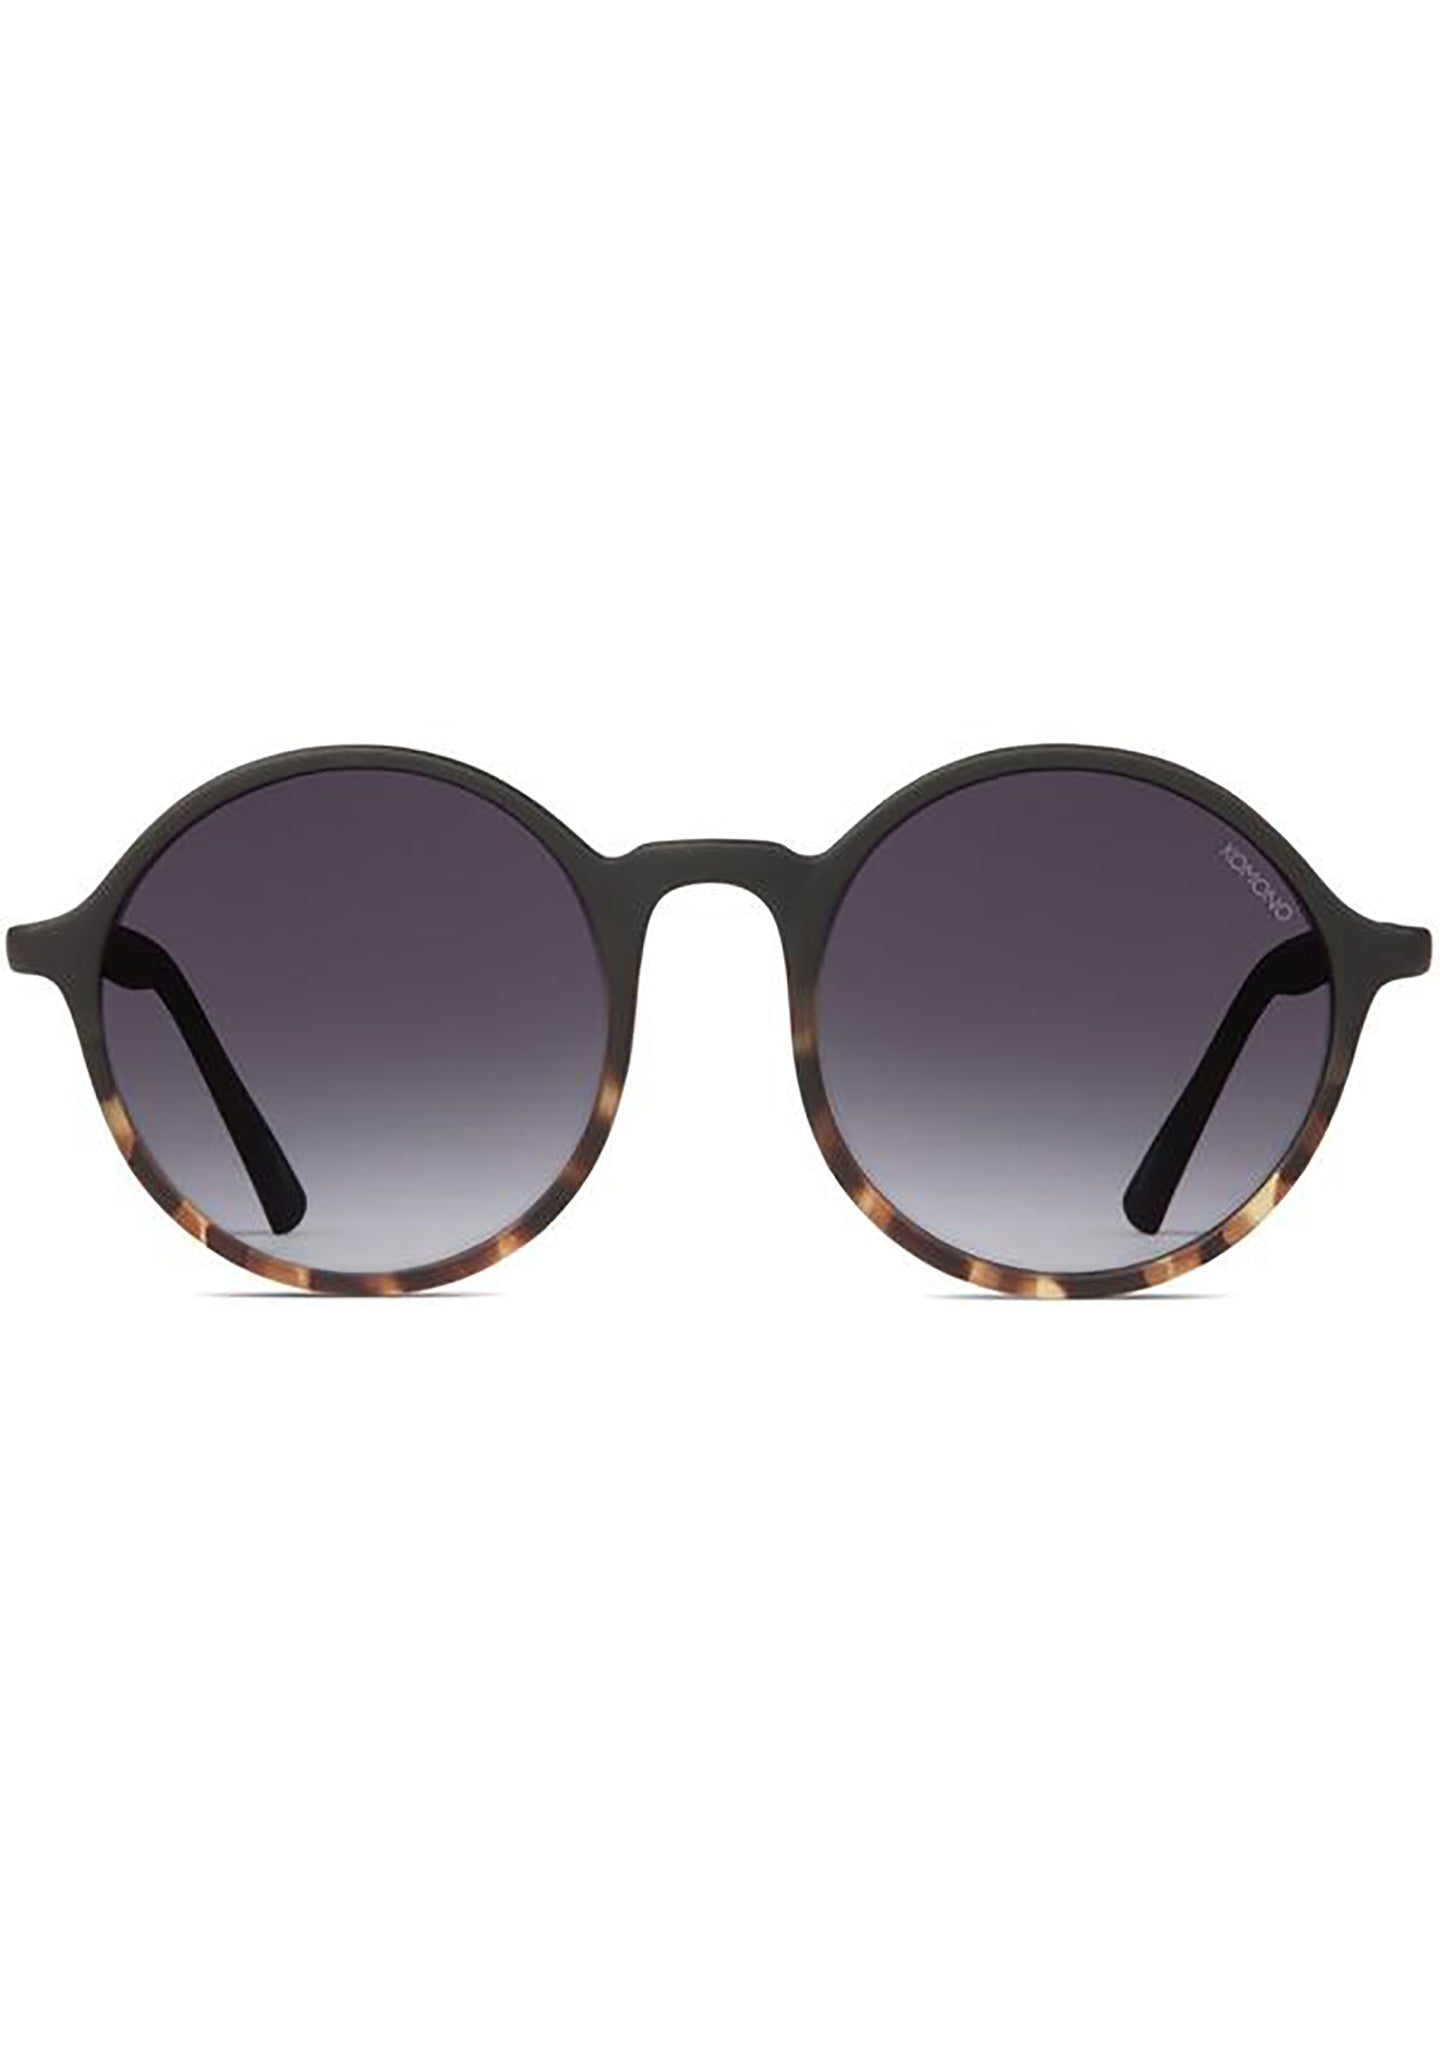 KOMONO Madison Sunglasses in Matte Black/Tortoise